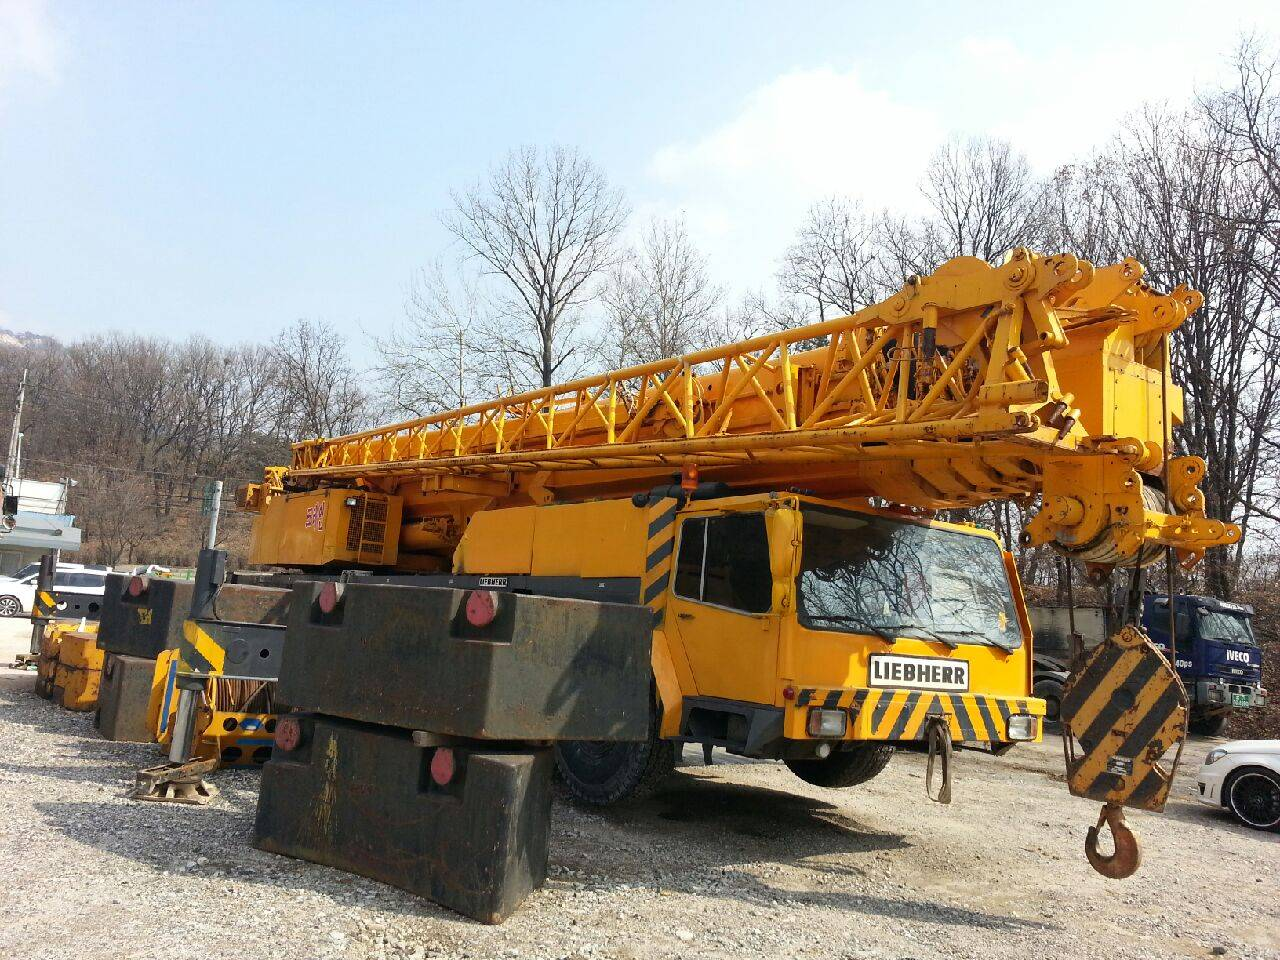 Liebherr 200 ton AT crane